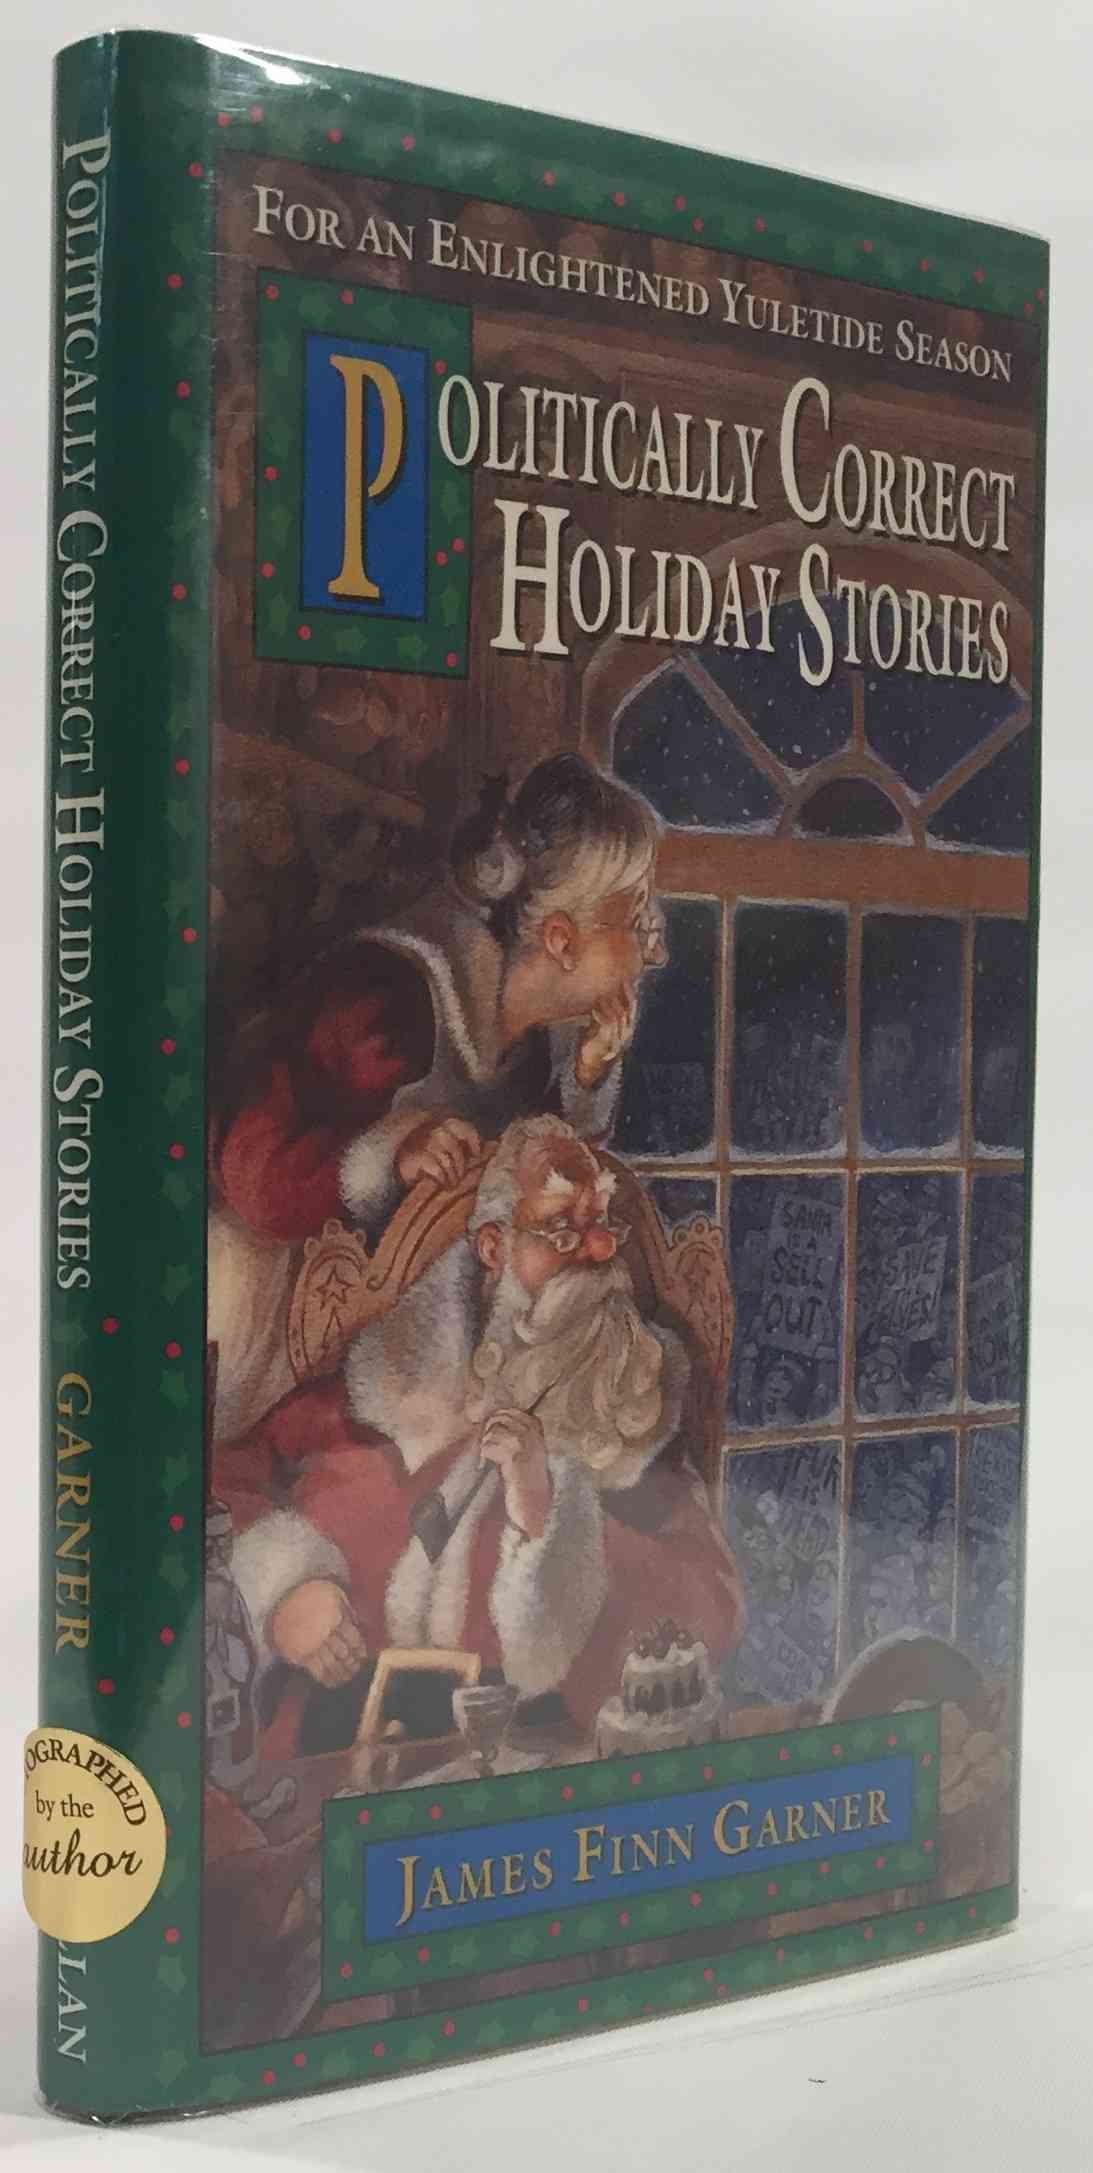 Politically Correct Holiday Stories  For an Enlightened Yuletide Season